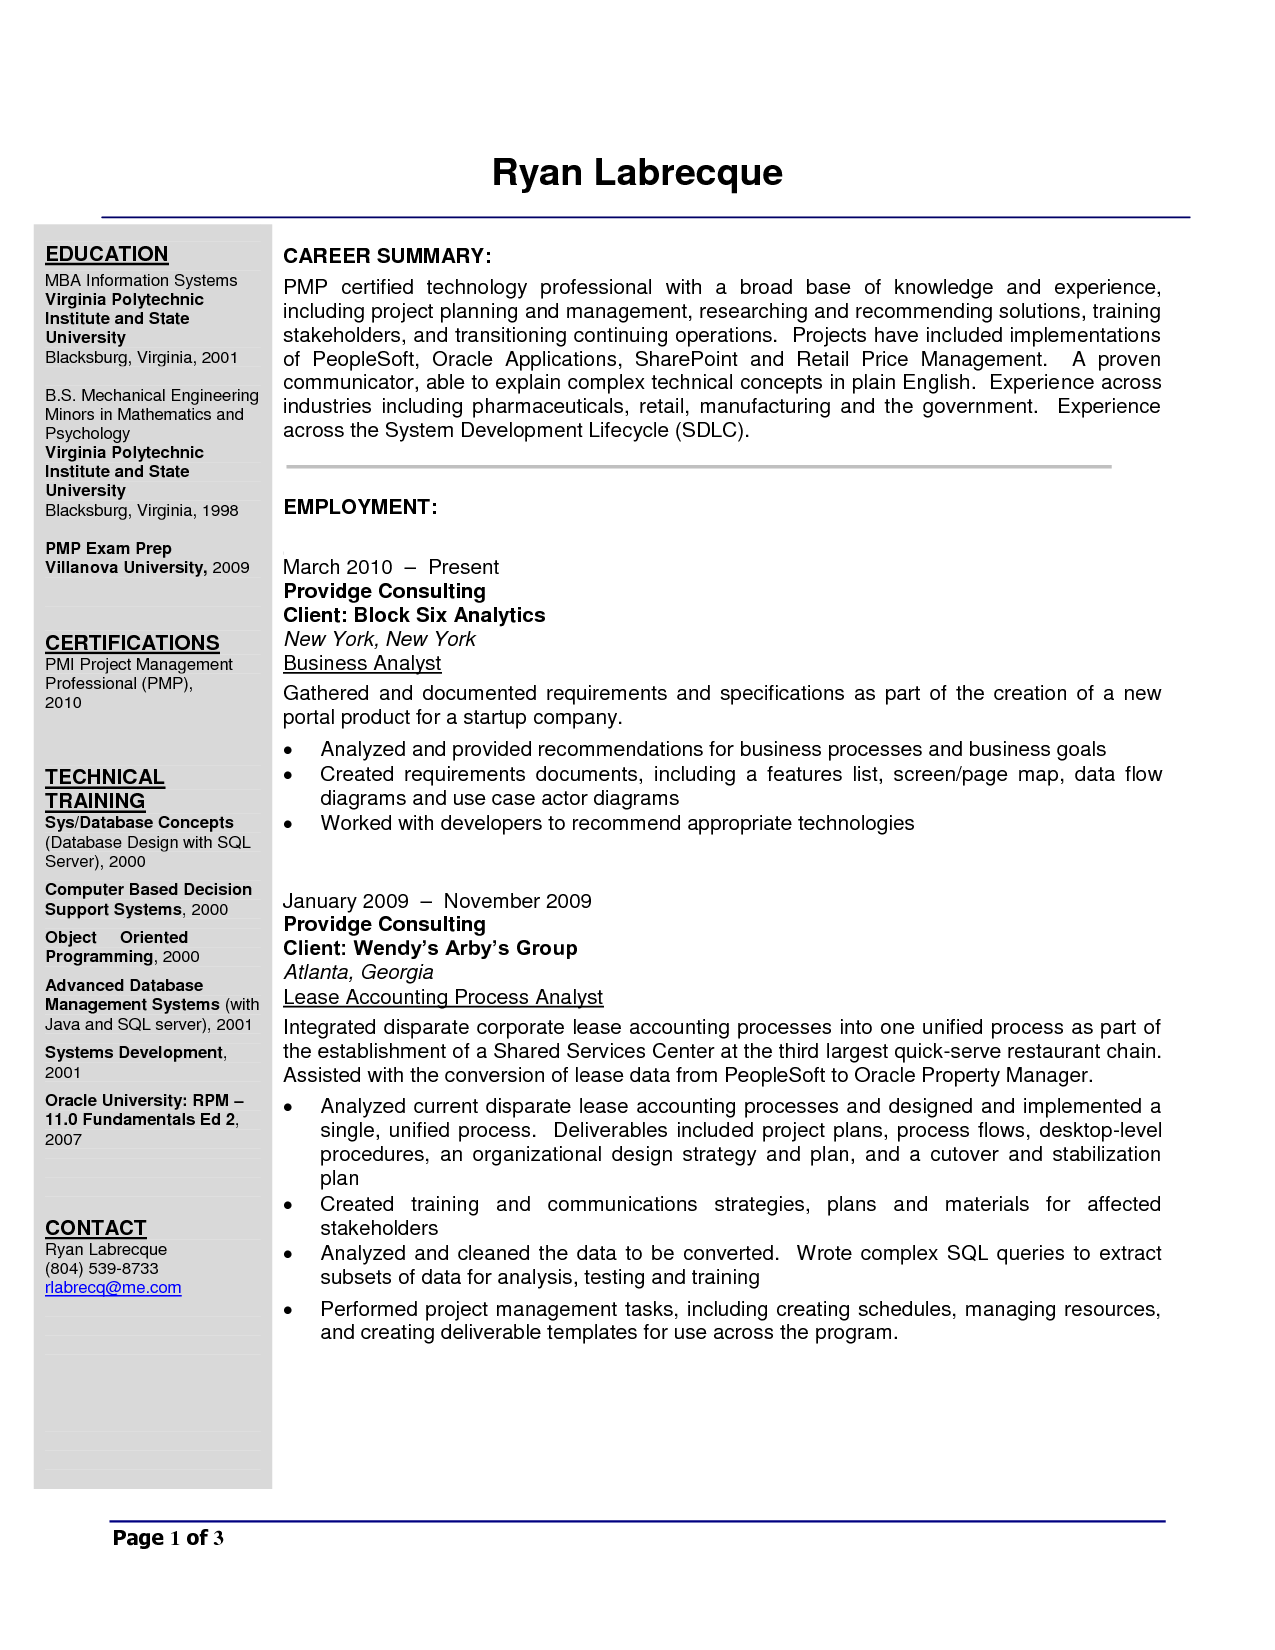 business analyst resume business analyst resume templates business analyst resume sample doc by ryan labrecque - It Business Analyst Resume Sample